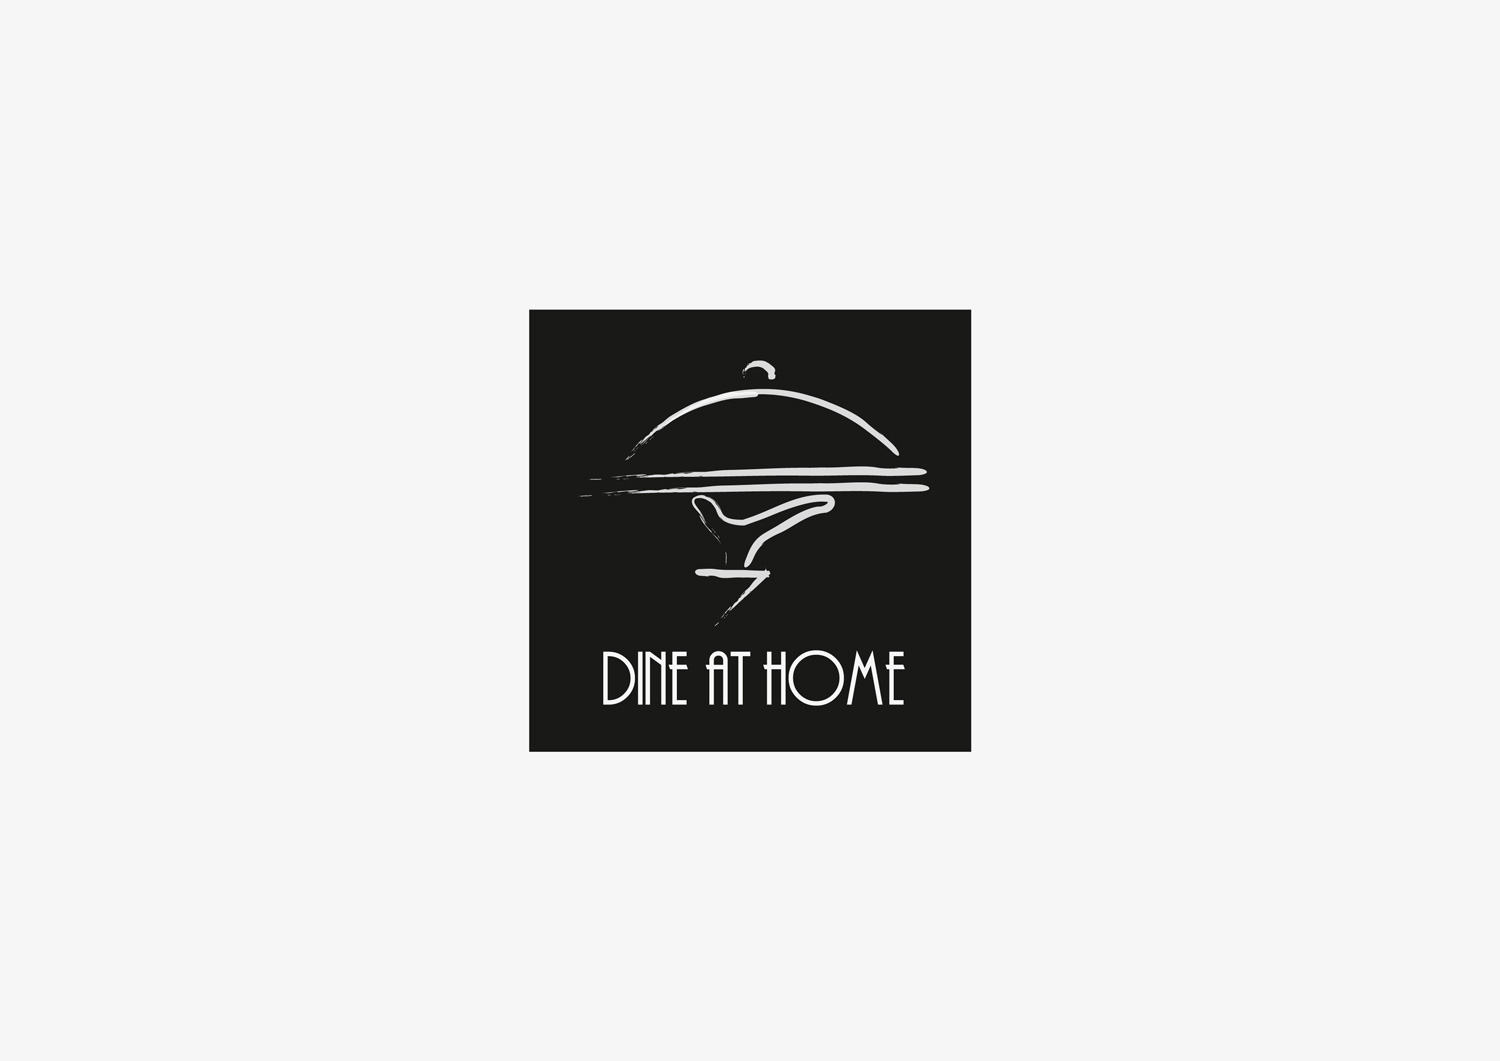 Dine-At-Home-1.jpg